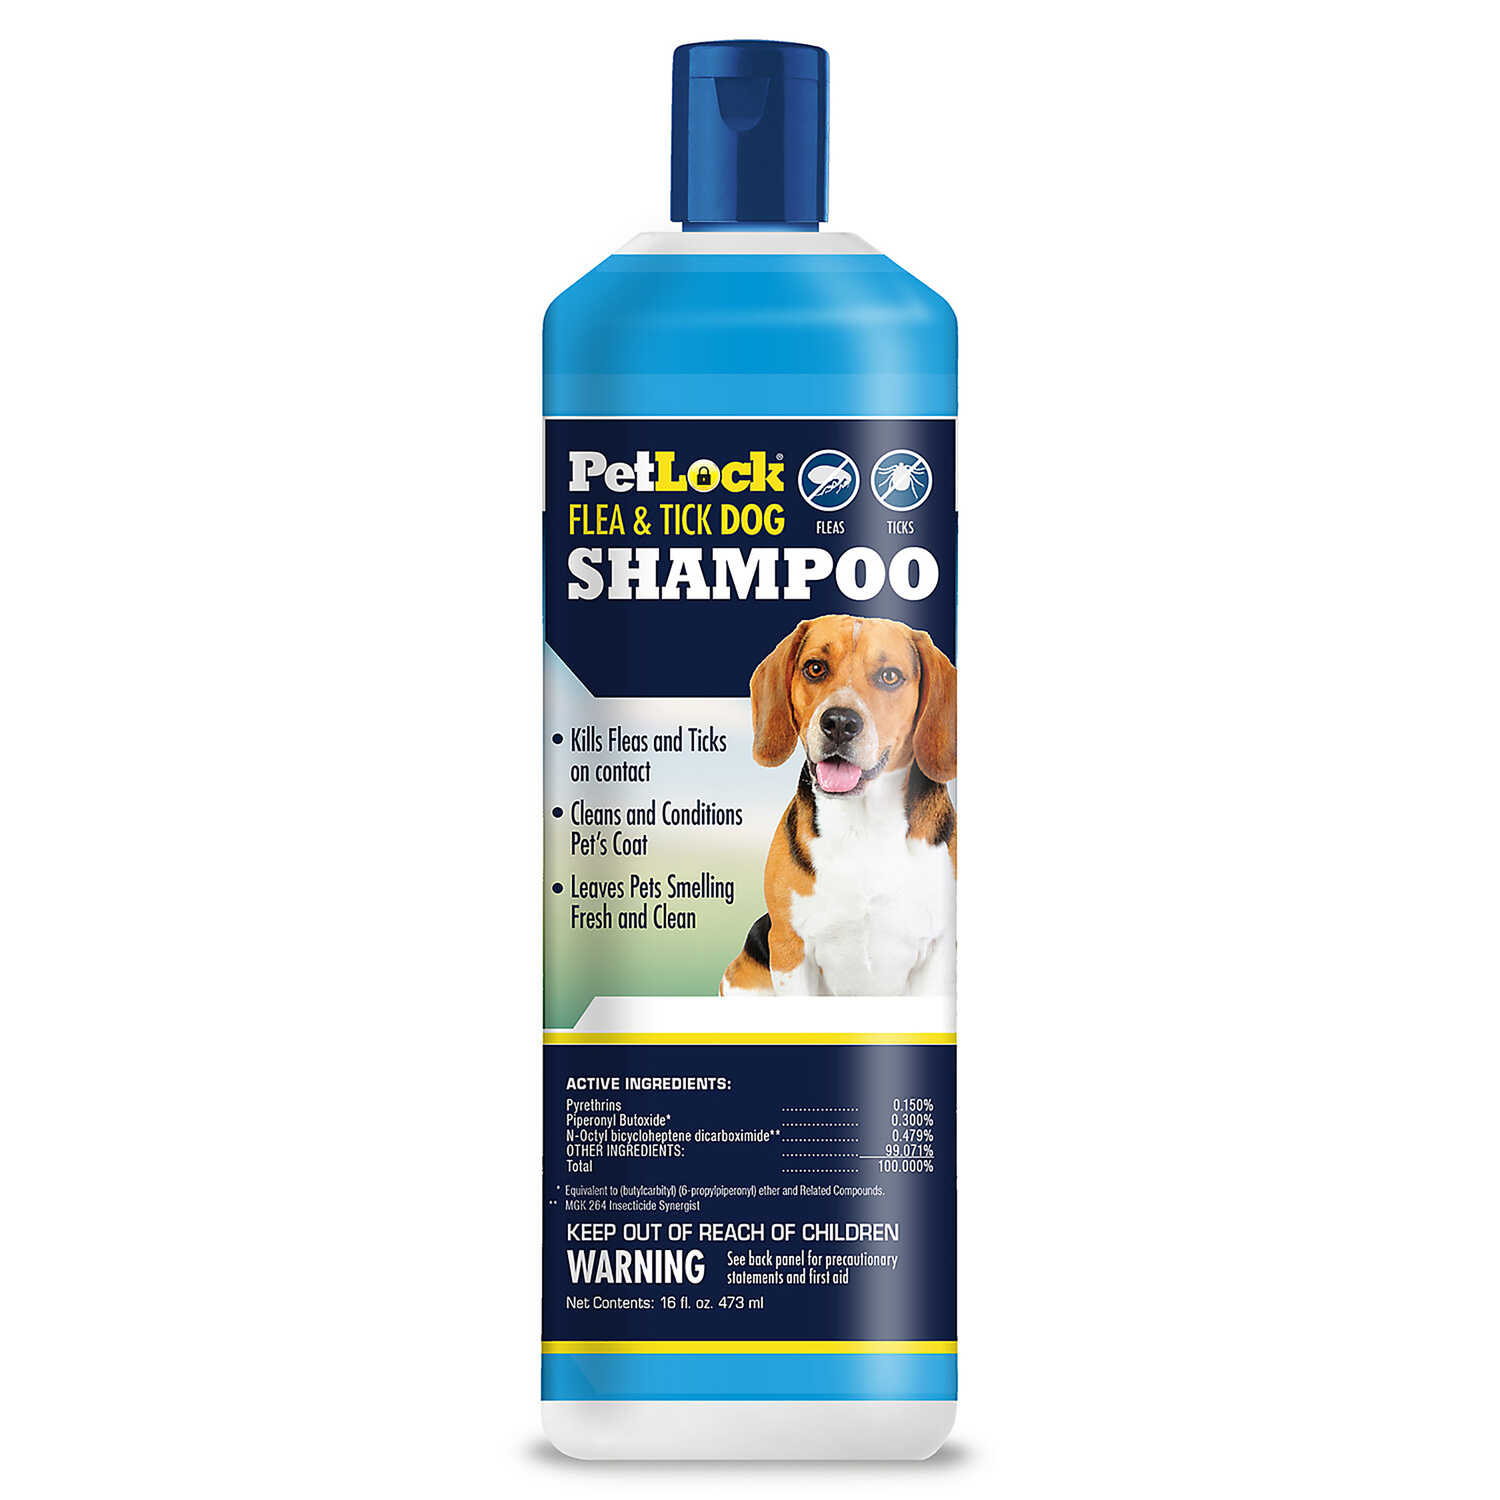 PetLock  Liquid  Dog  Flea and Tick Shampoo  0.10% Permethrin and 0.50% Piperonyl Butoxide  16 oz.